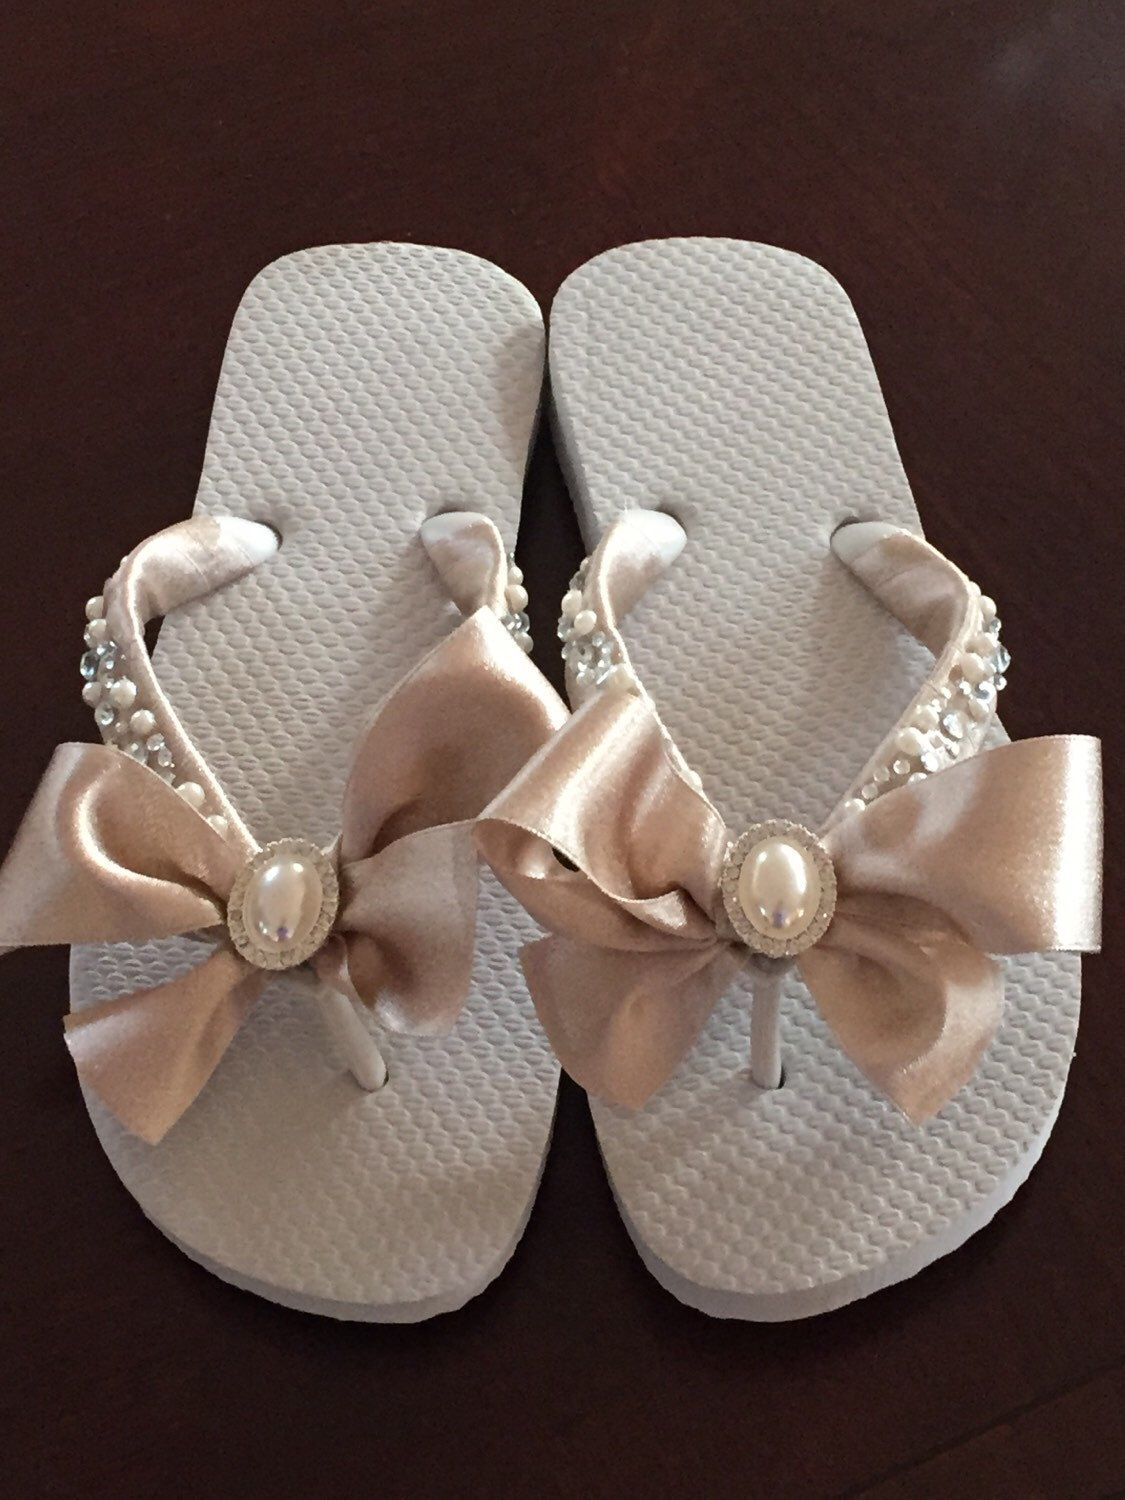 3ccd87ae211edb Bridal Flip Flops Wedges Shoes. Wedding Flip Flops.Bridal Bowz Flip Flops.  Ivory Flip Flops. Destination Wedding. Mother of the Bride